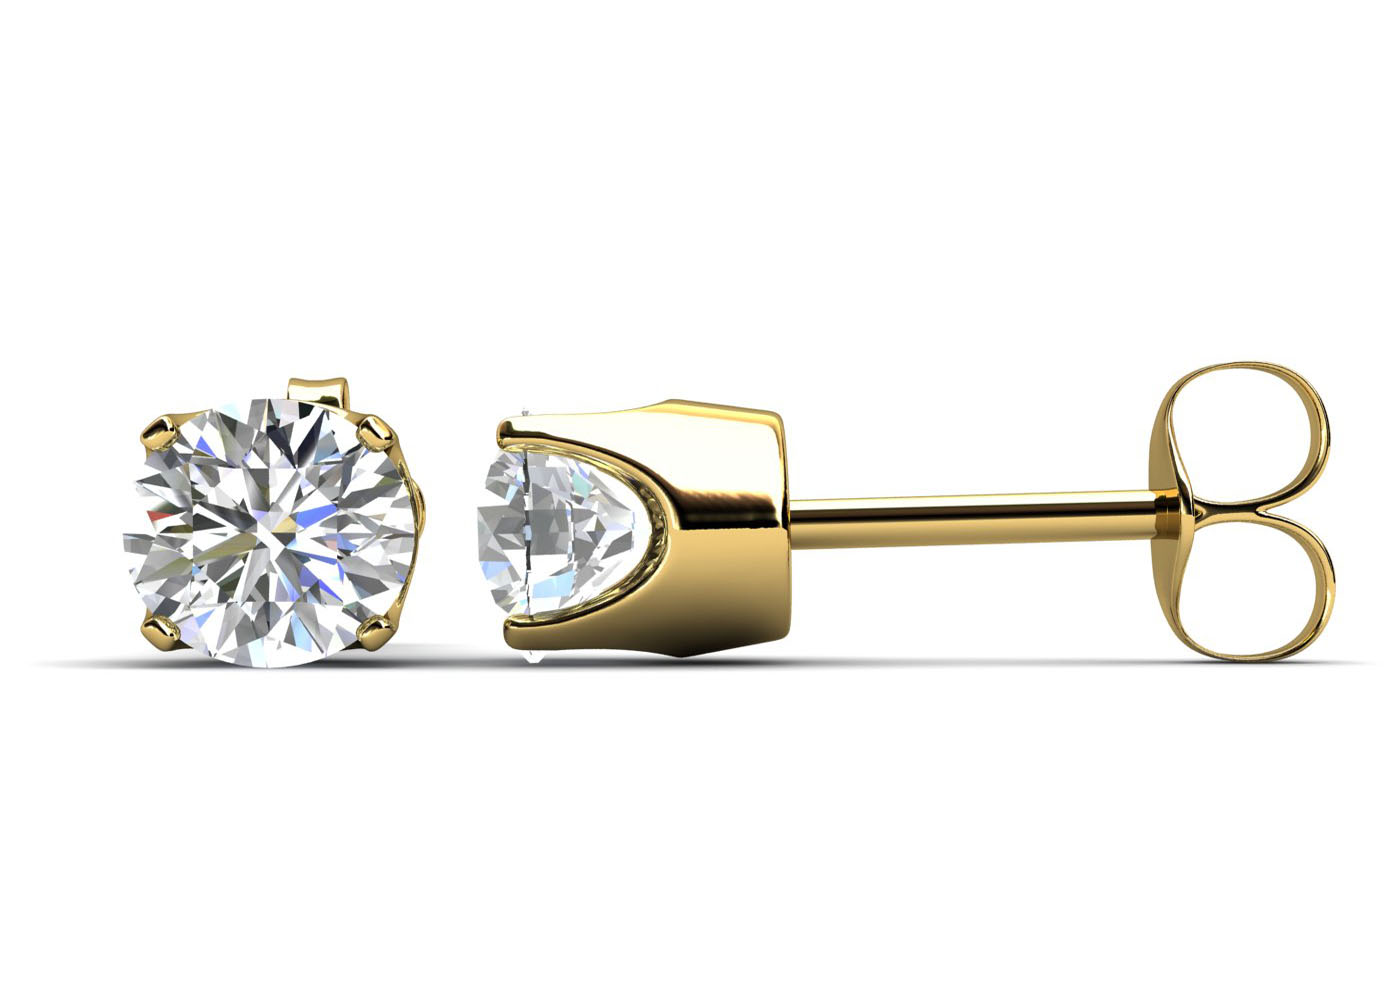 9ct Claw Set Diamond Earrings 0.40 Carats - Image 4 of 9